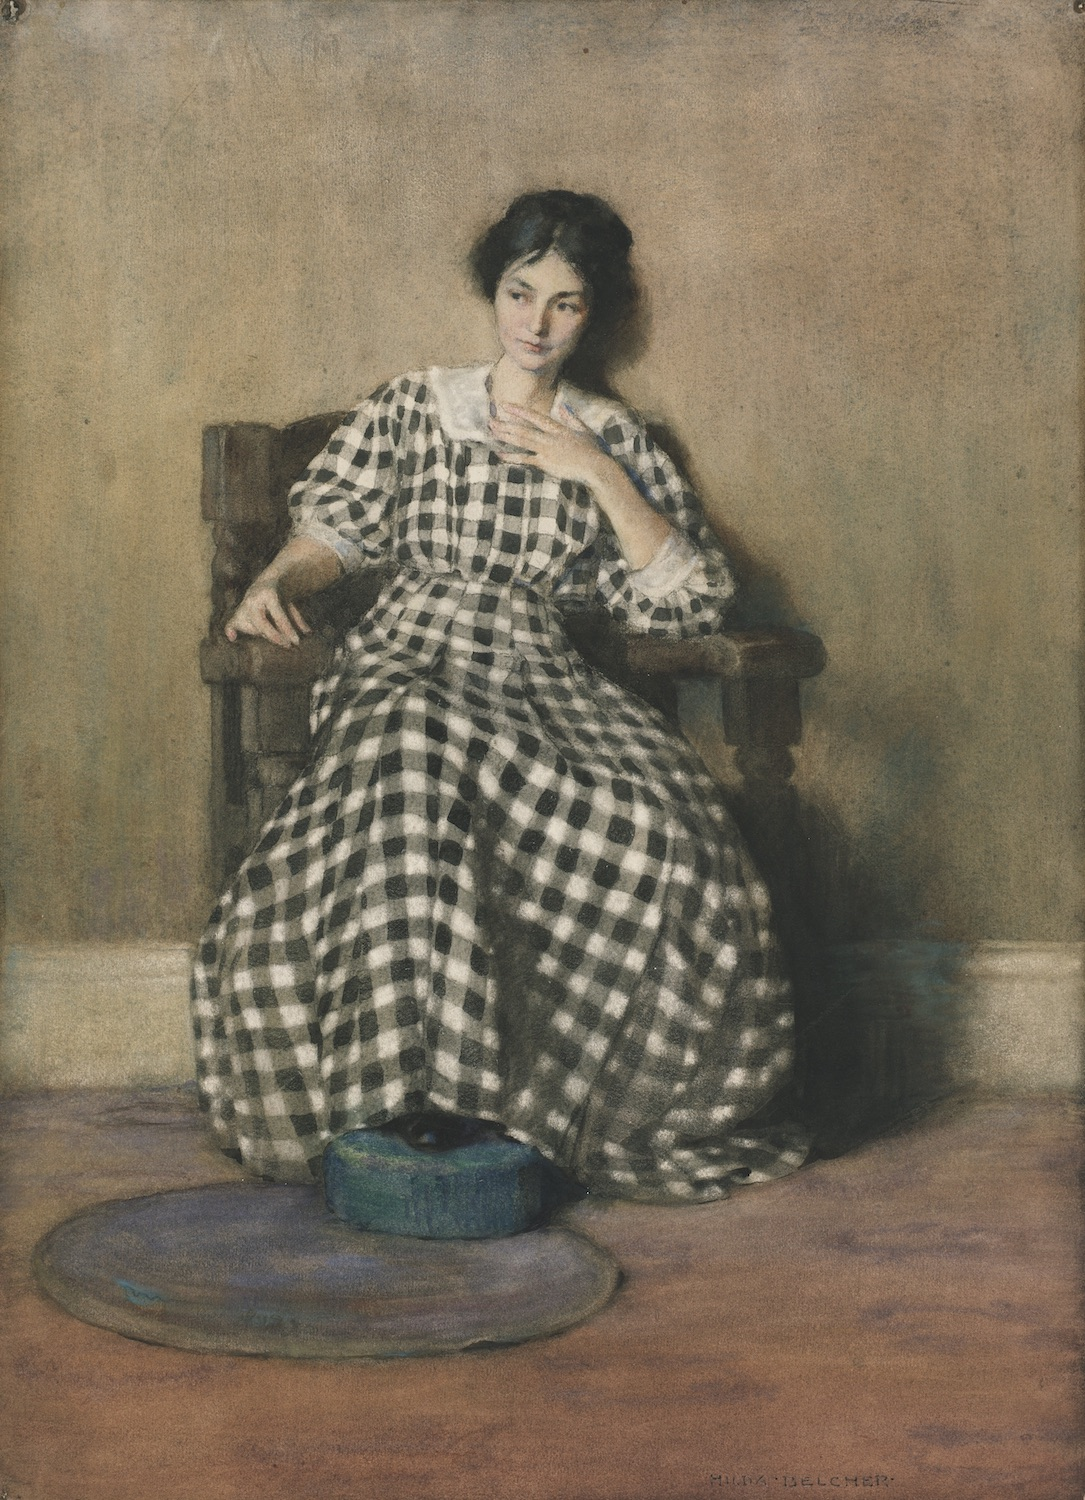 """""""Women Picturing Women"""" Features Alumnae of the Art Students League of New York"""